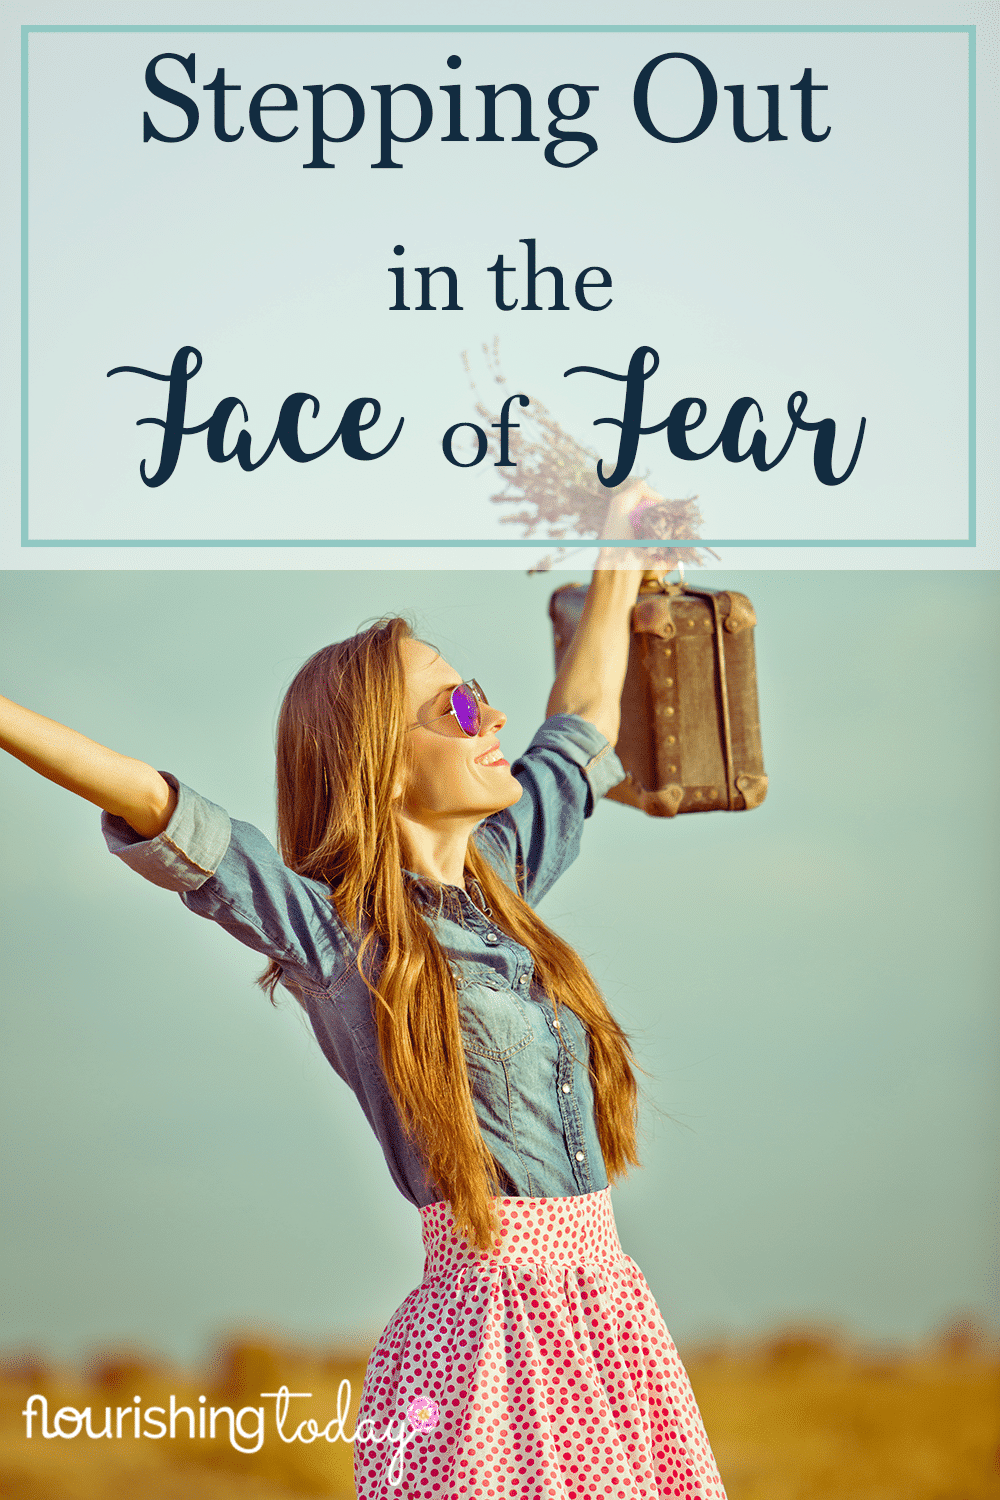 Is God calling you to do something outside your comfort zone? Are you shrinking back in fear? Stepping out in the face of fear can lead you to great things!